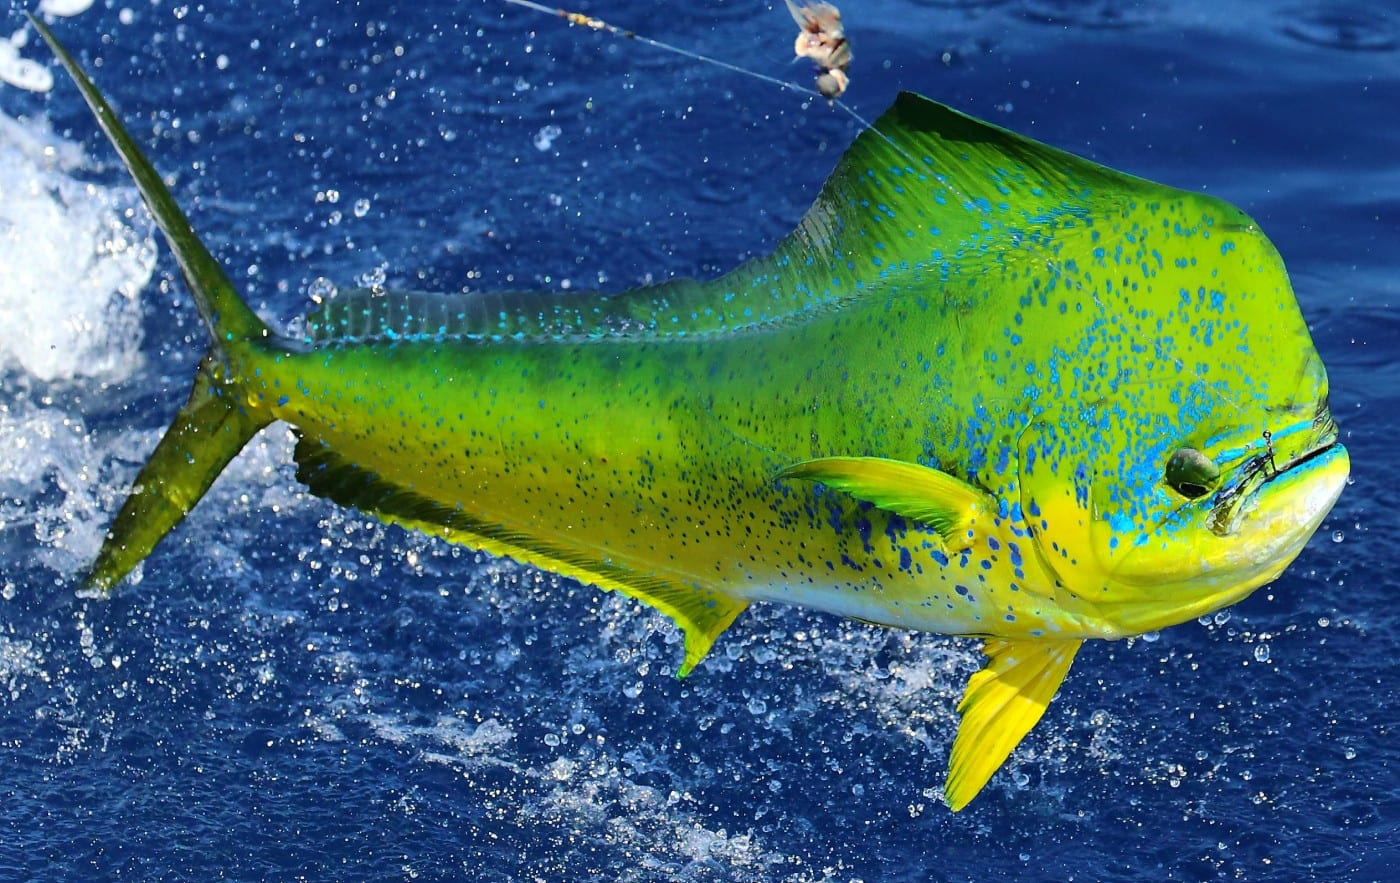 Pin Mahi Mahi on Pinterest